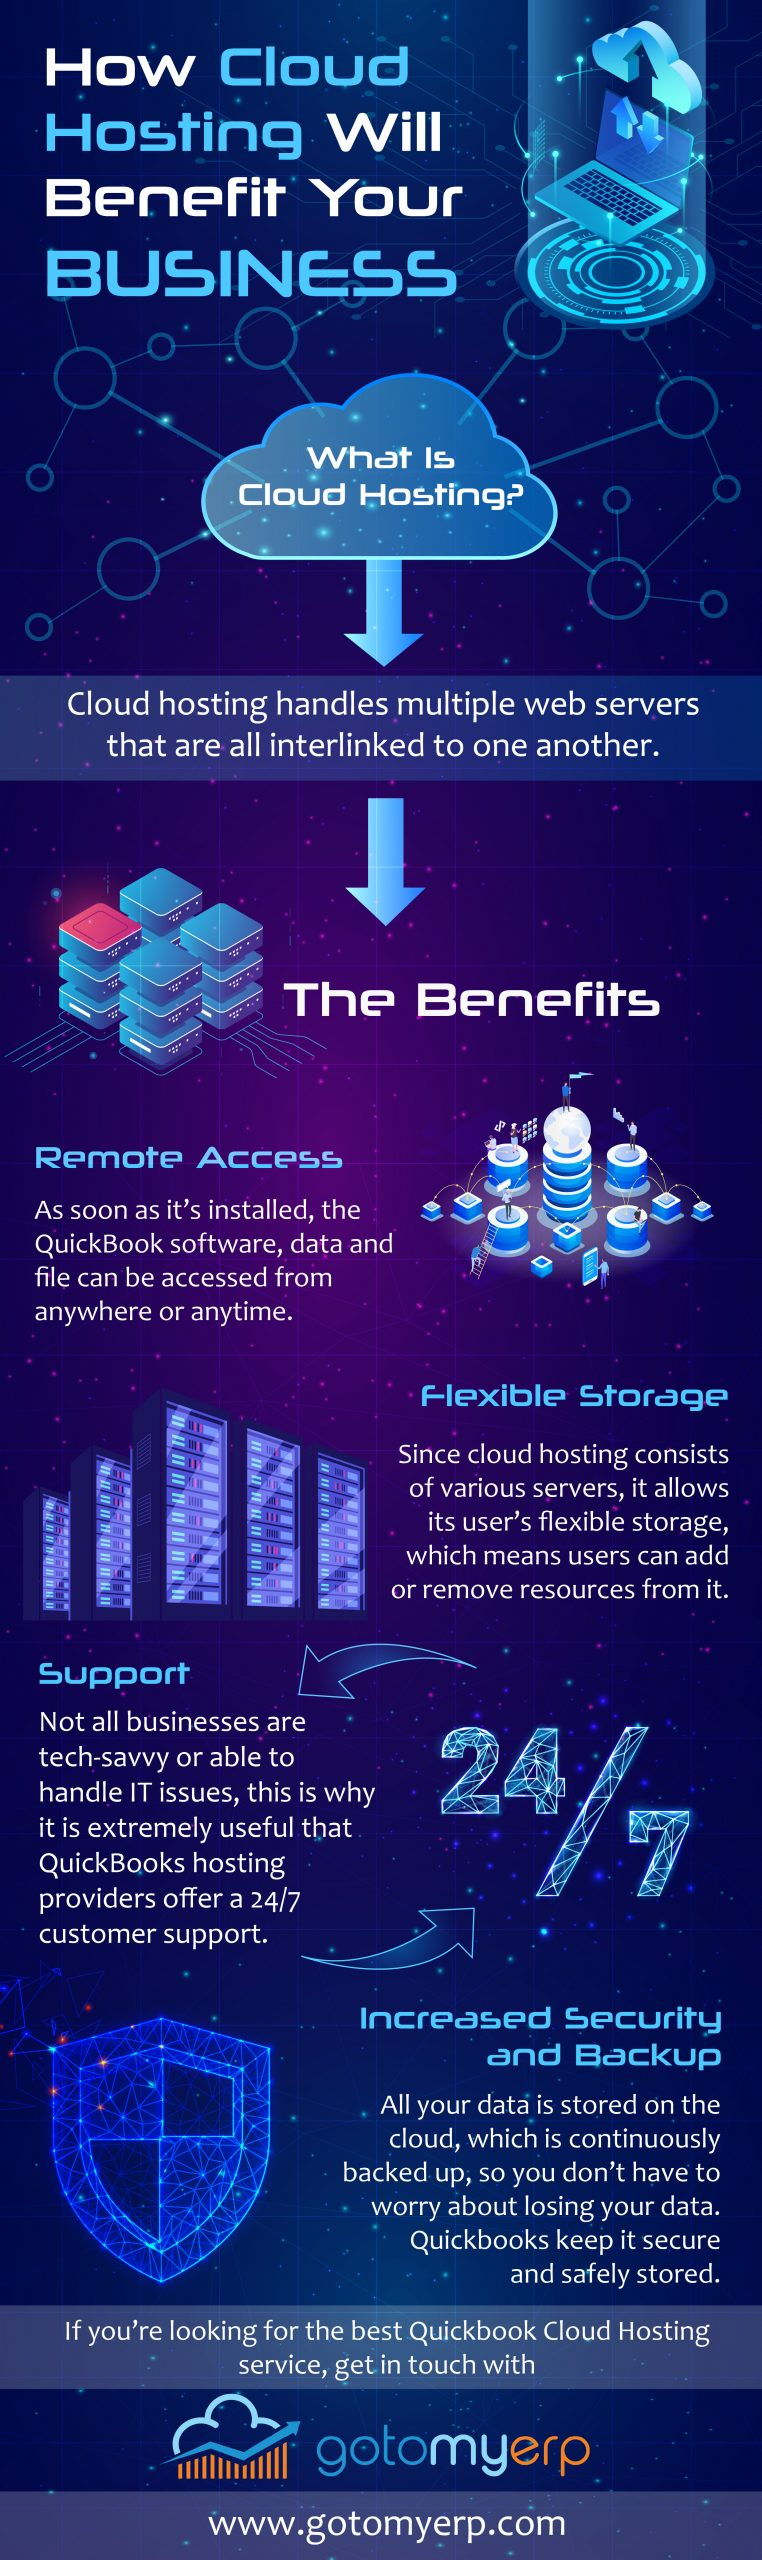 How cloud hosting will benefit your business